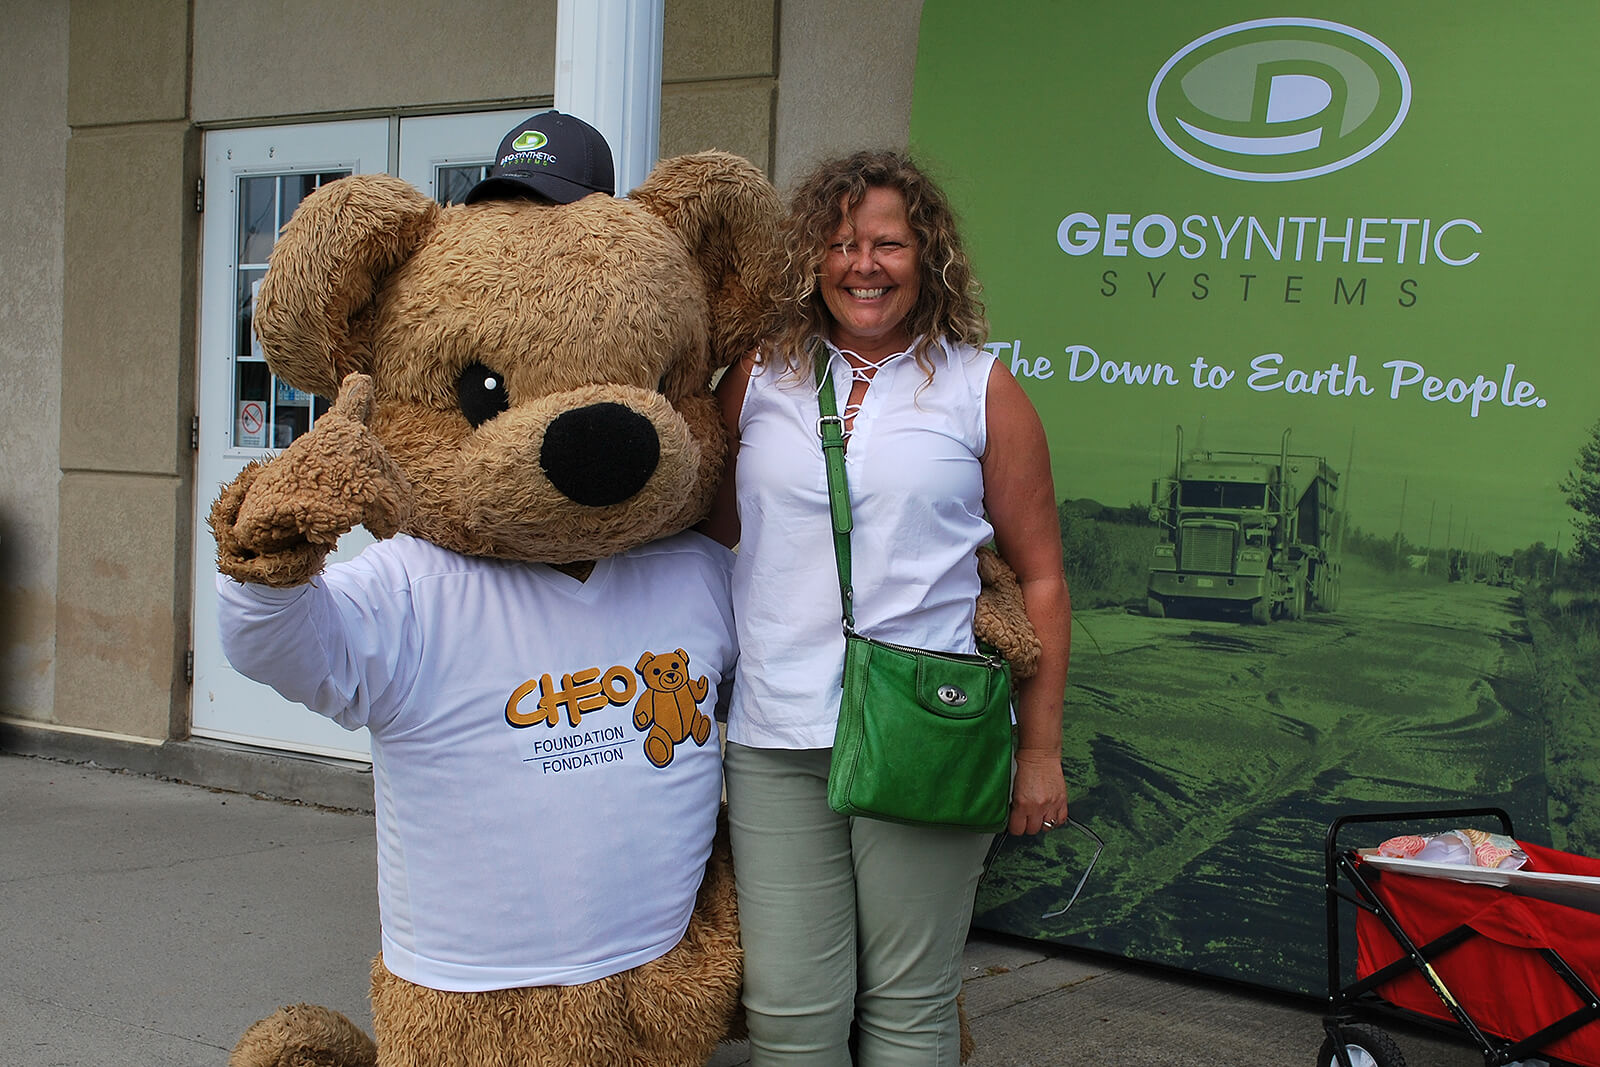 Presenting sponsor Geosynthetic Systems